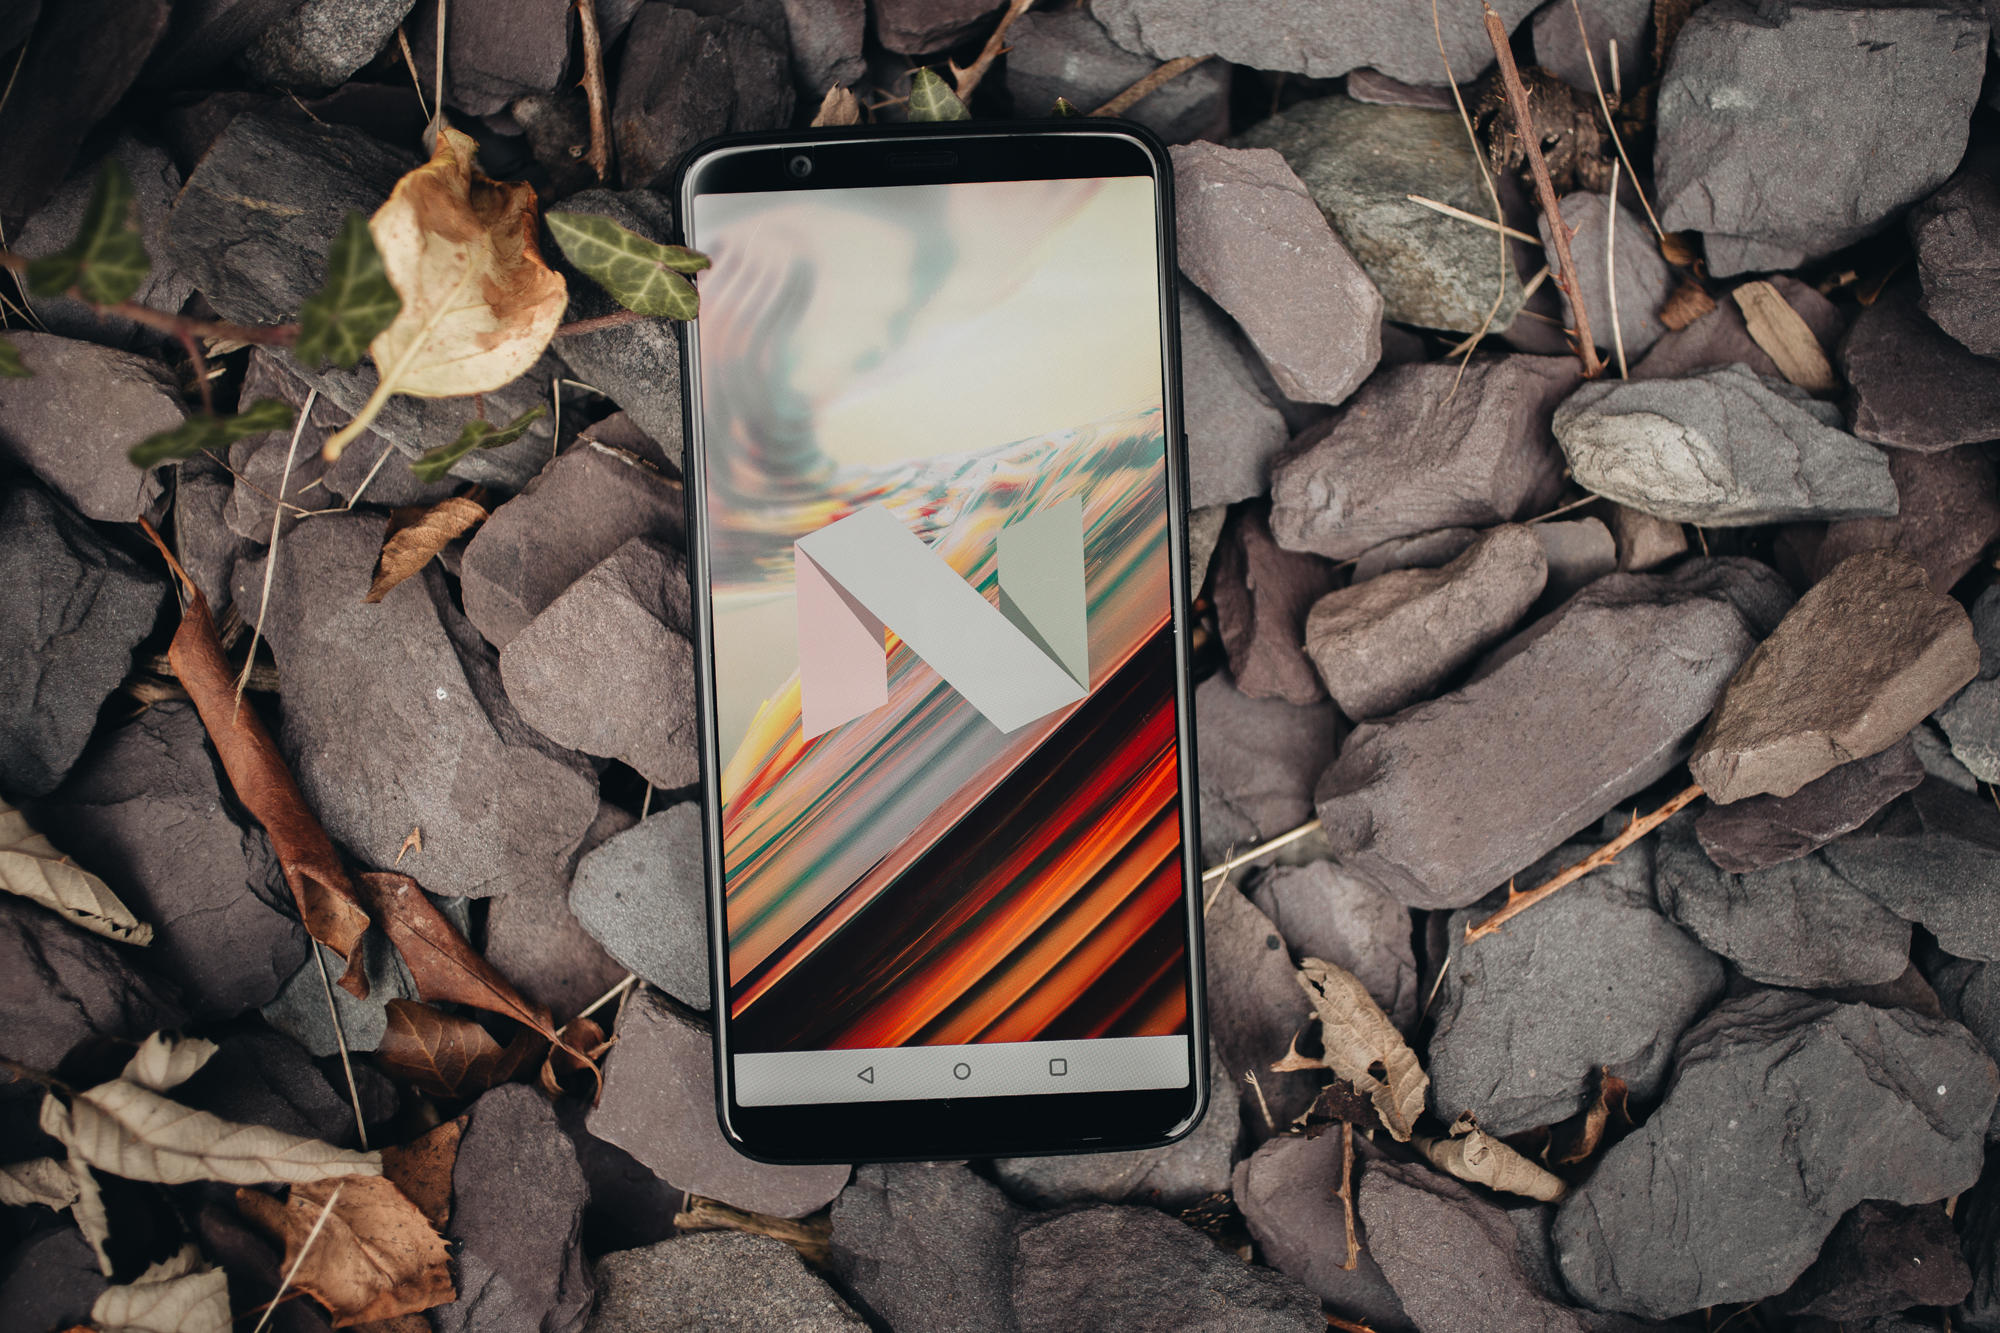 oneplus-5t-product-10